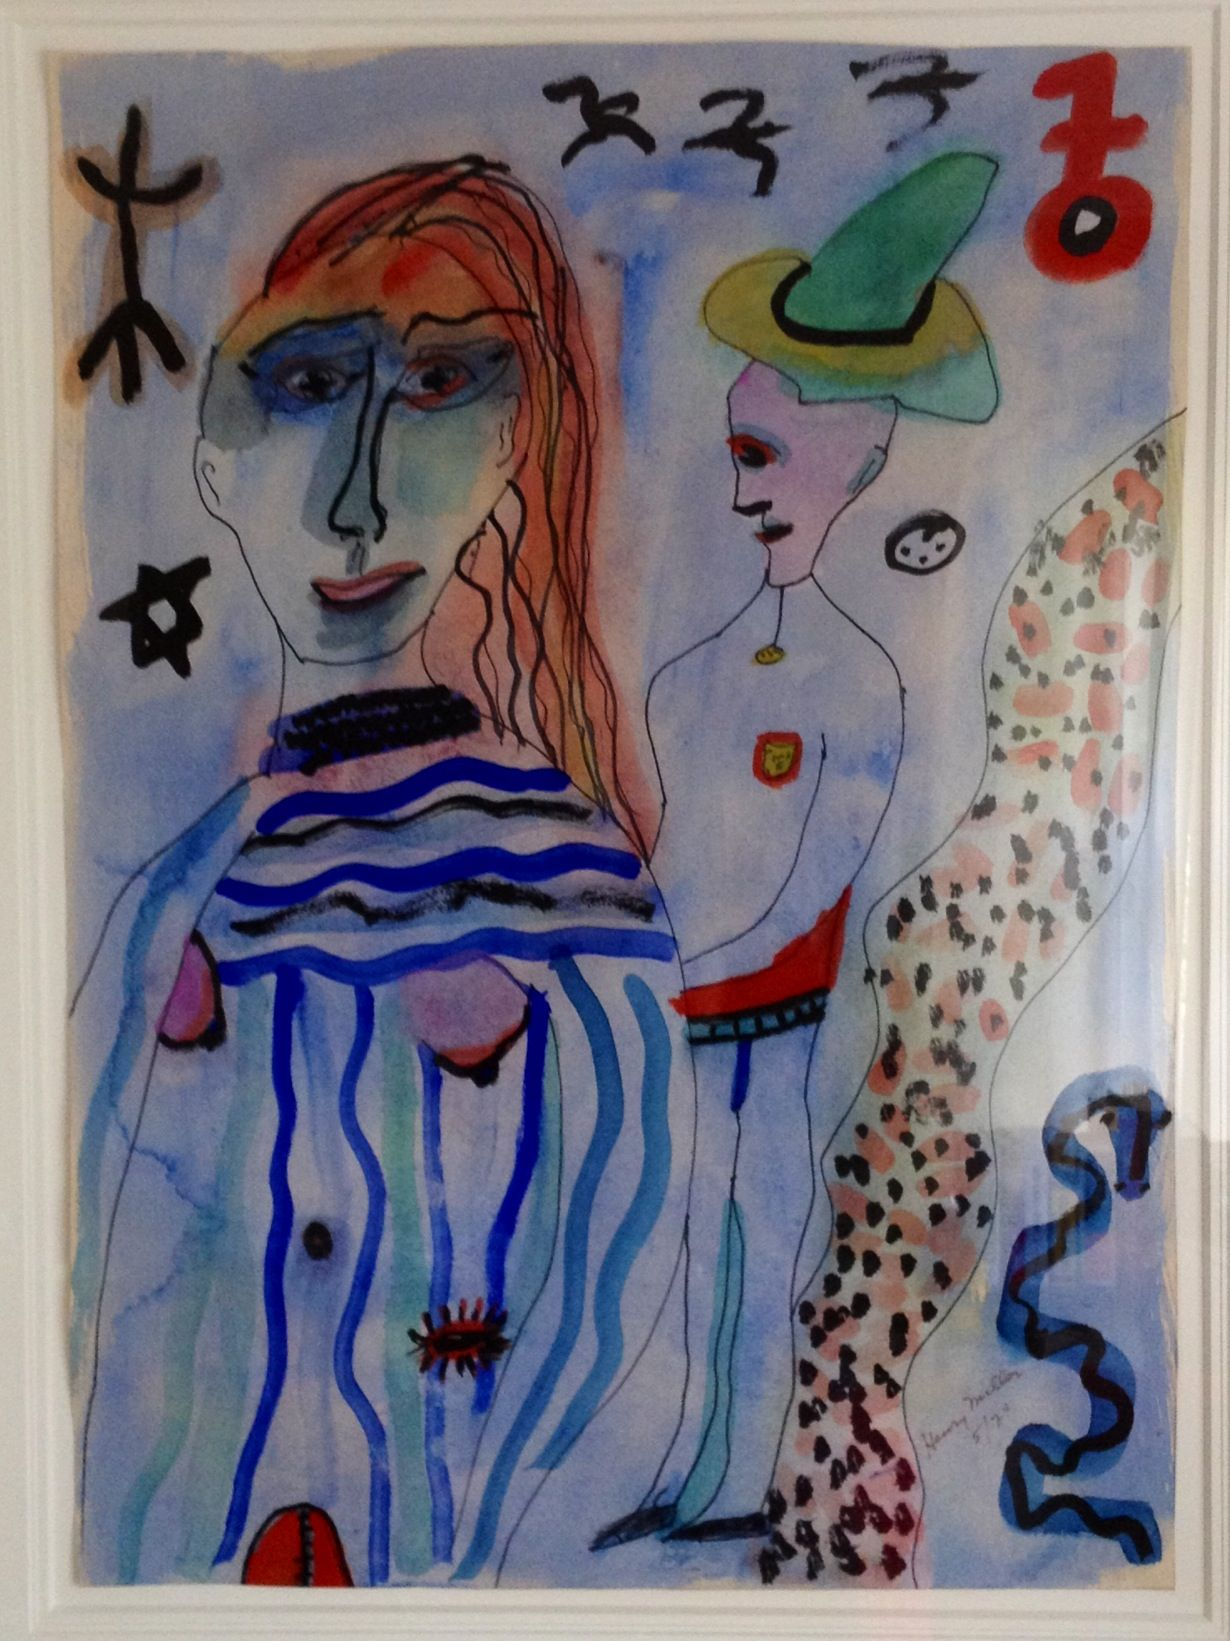 Henry Miller 1974 Painting In Personal